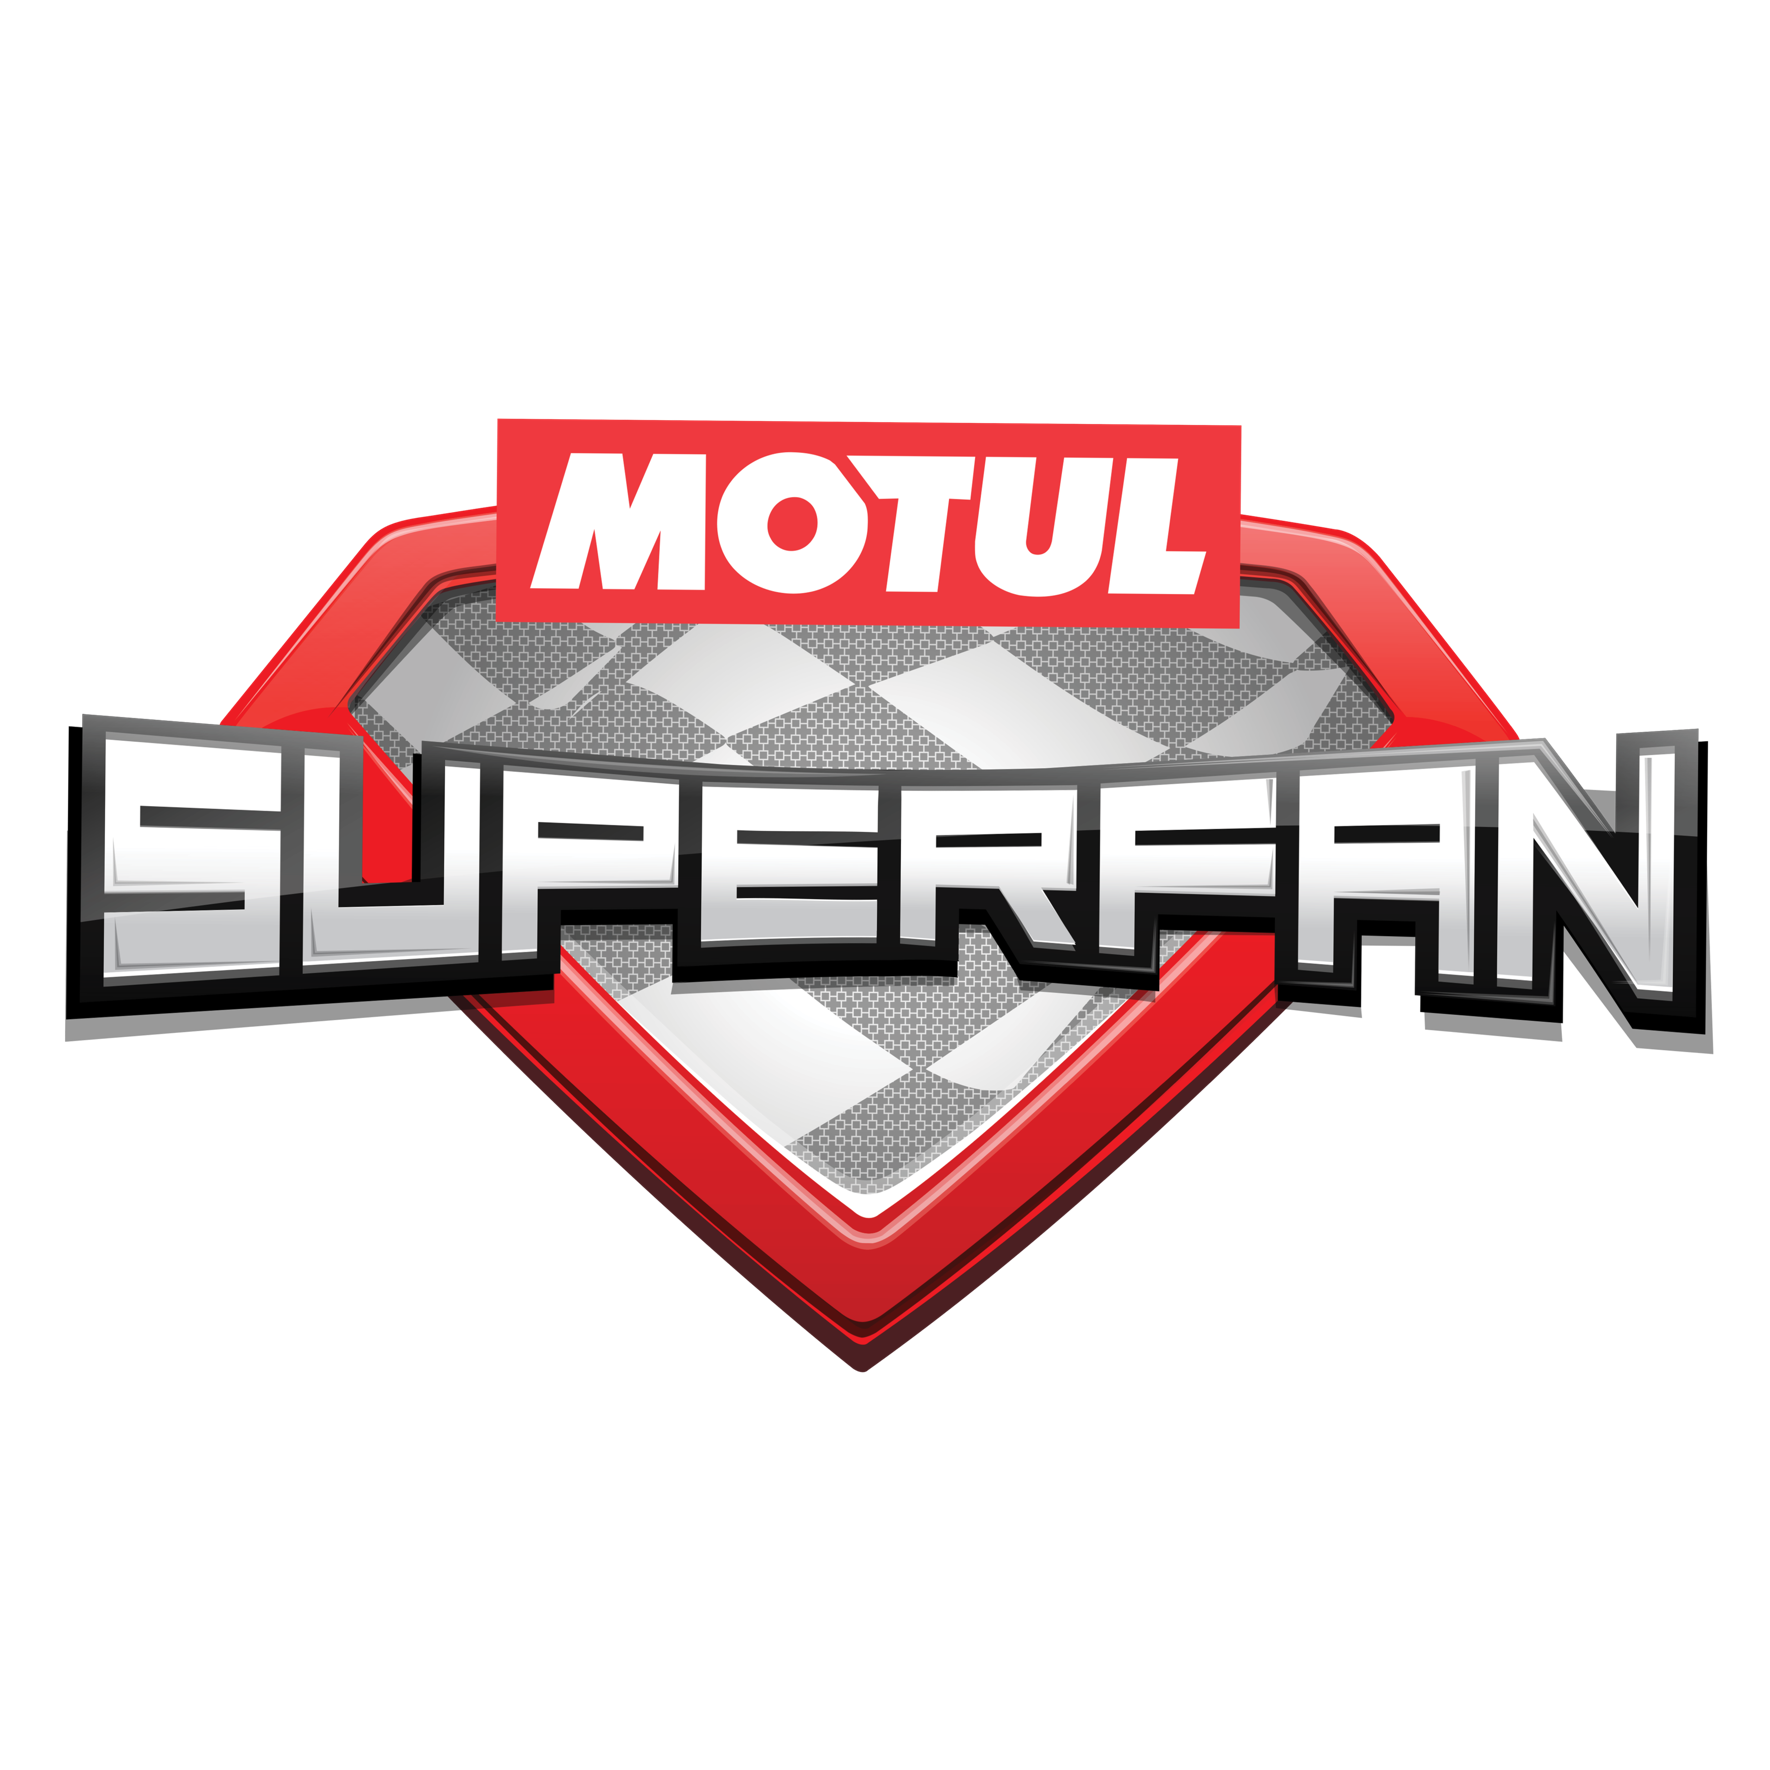 MOTOGP™ READY TO WELCOME MOTUL SUPERFAN COMMITTEE AT MOTUL TT ASSEN